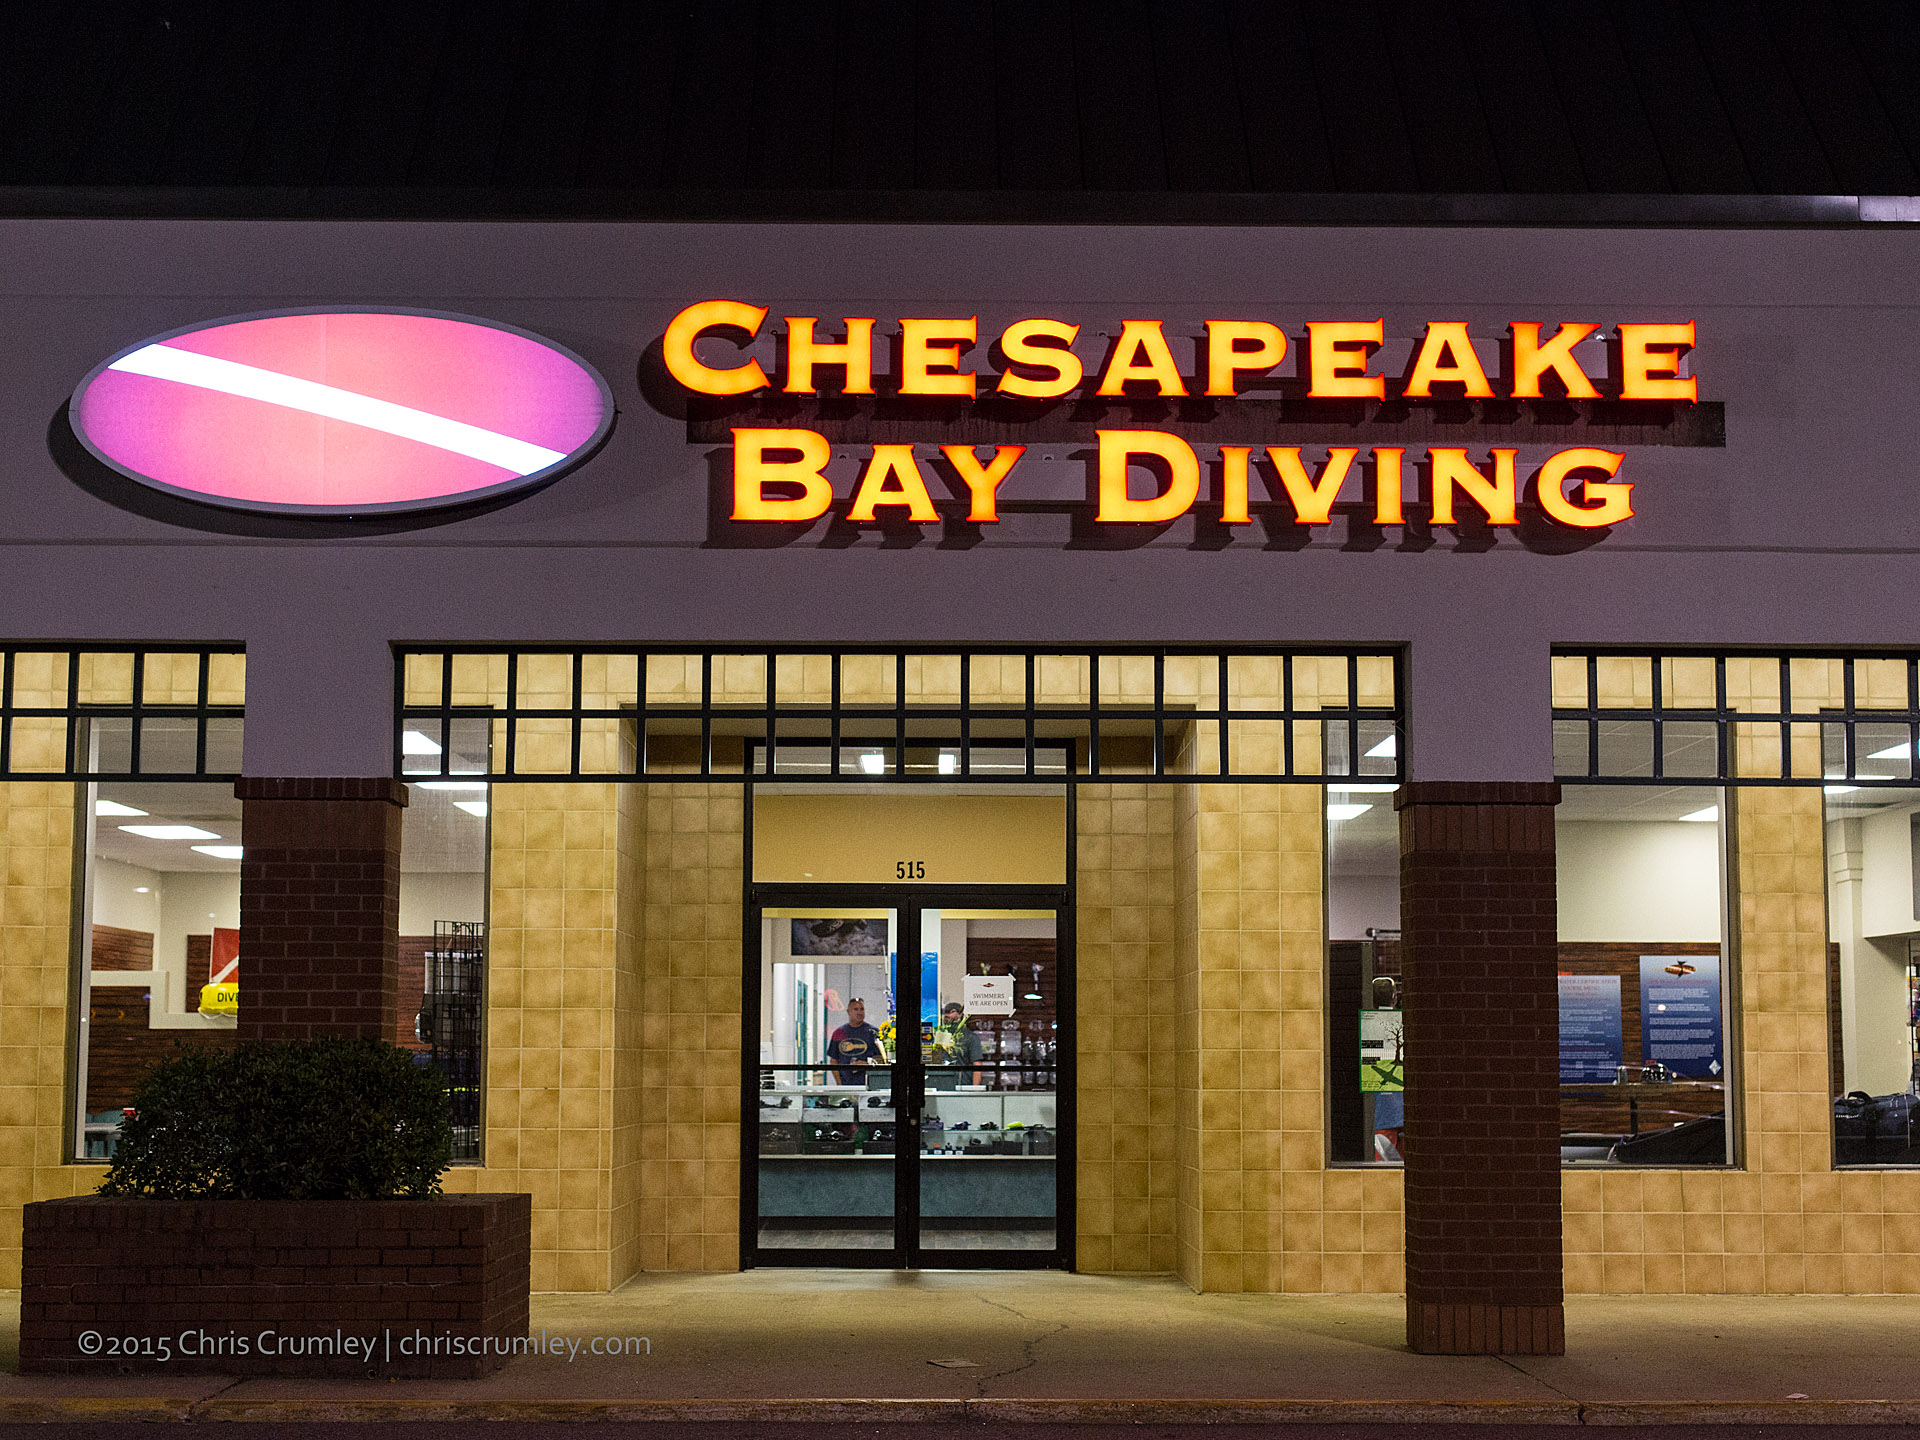 Chesapeake Bay Diving - New Dive Shop at Hilltop in Virginia Beach